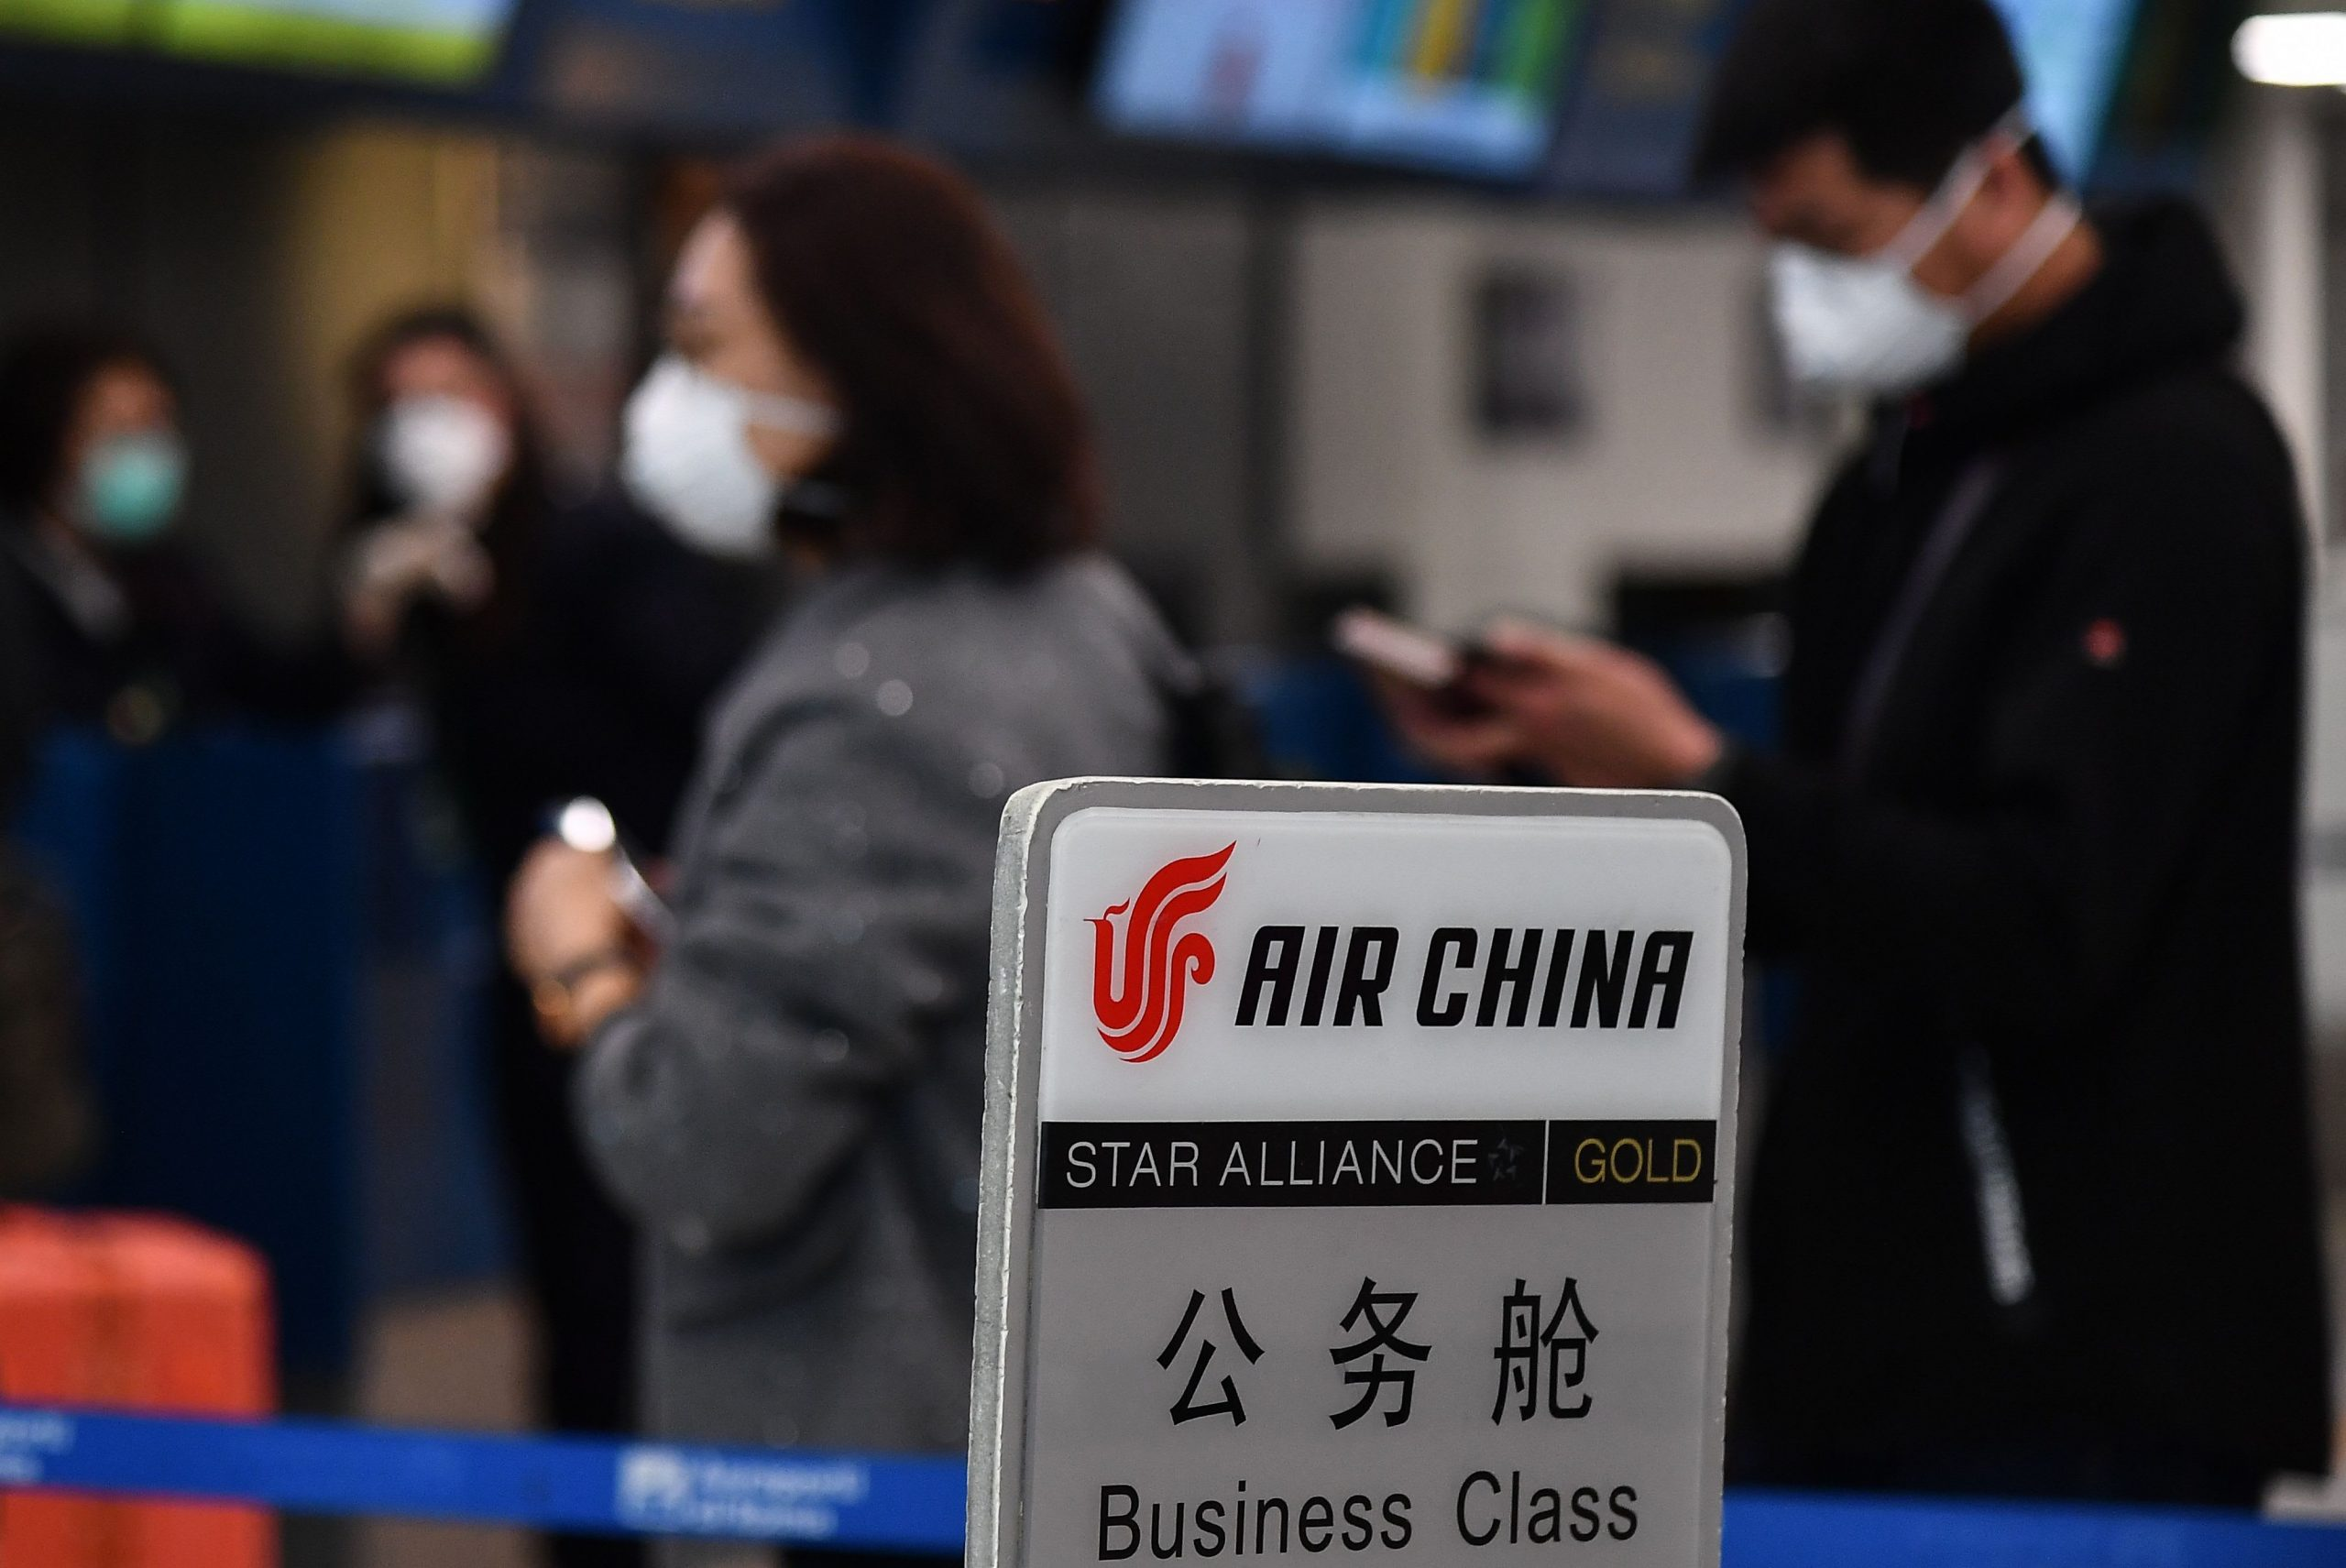 Coronavirus: China's airlines told not to axe global flights as thousands cut